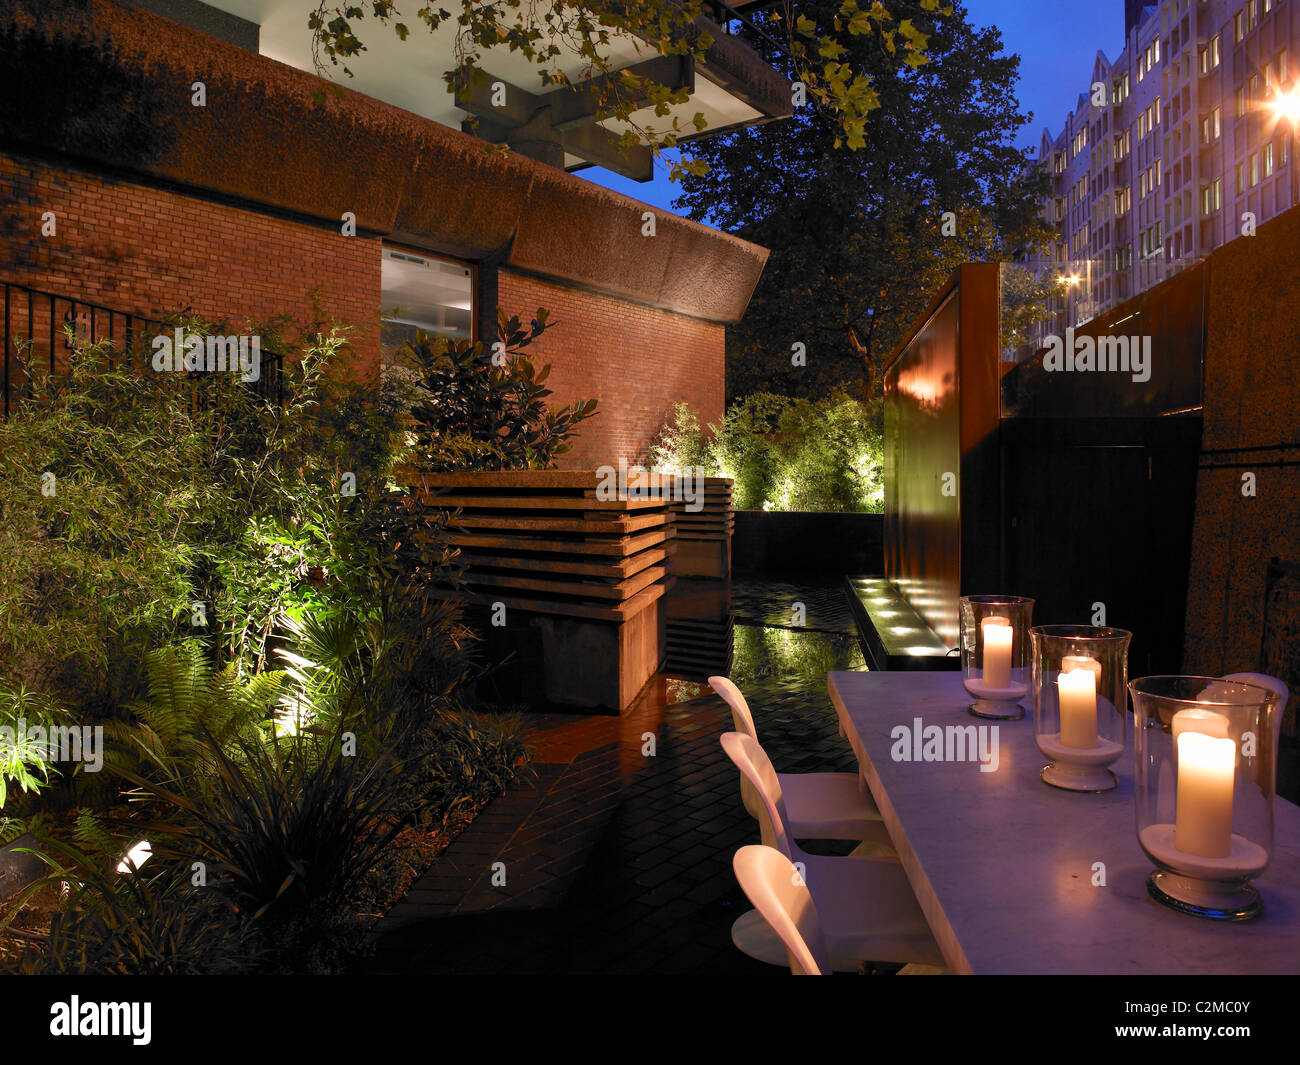 Patio With Table And Candles At Night.